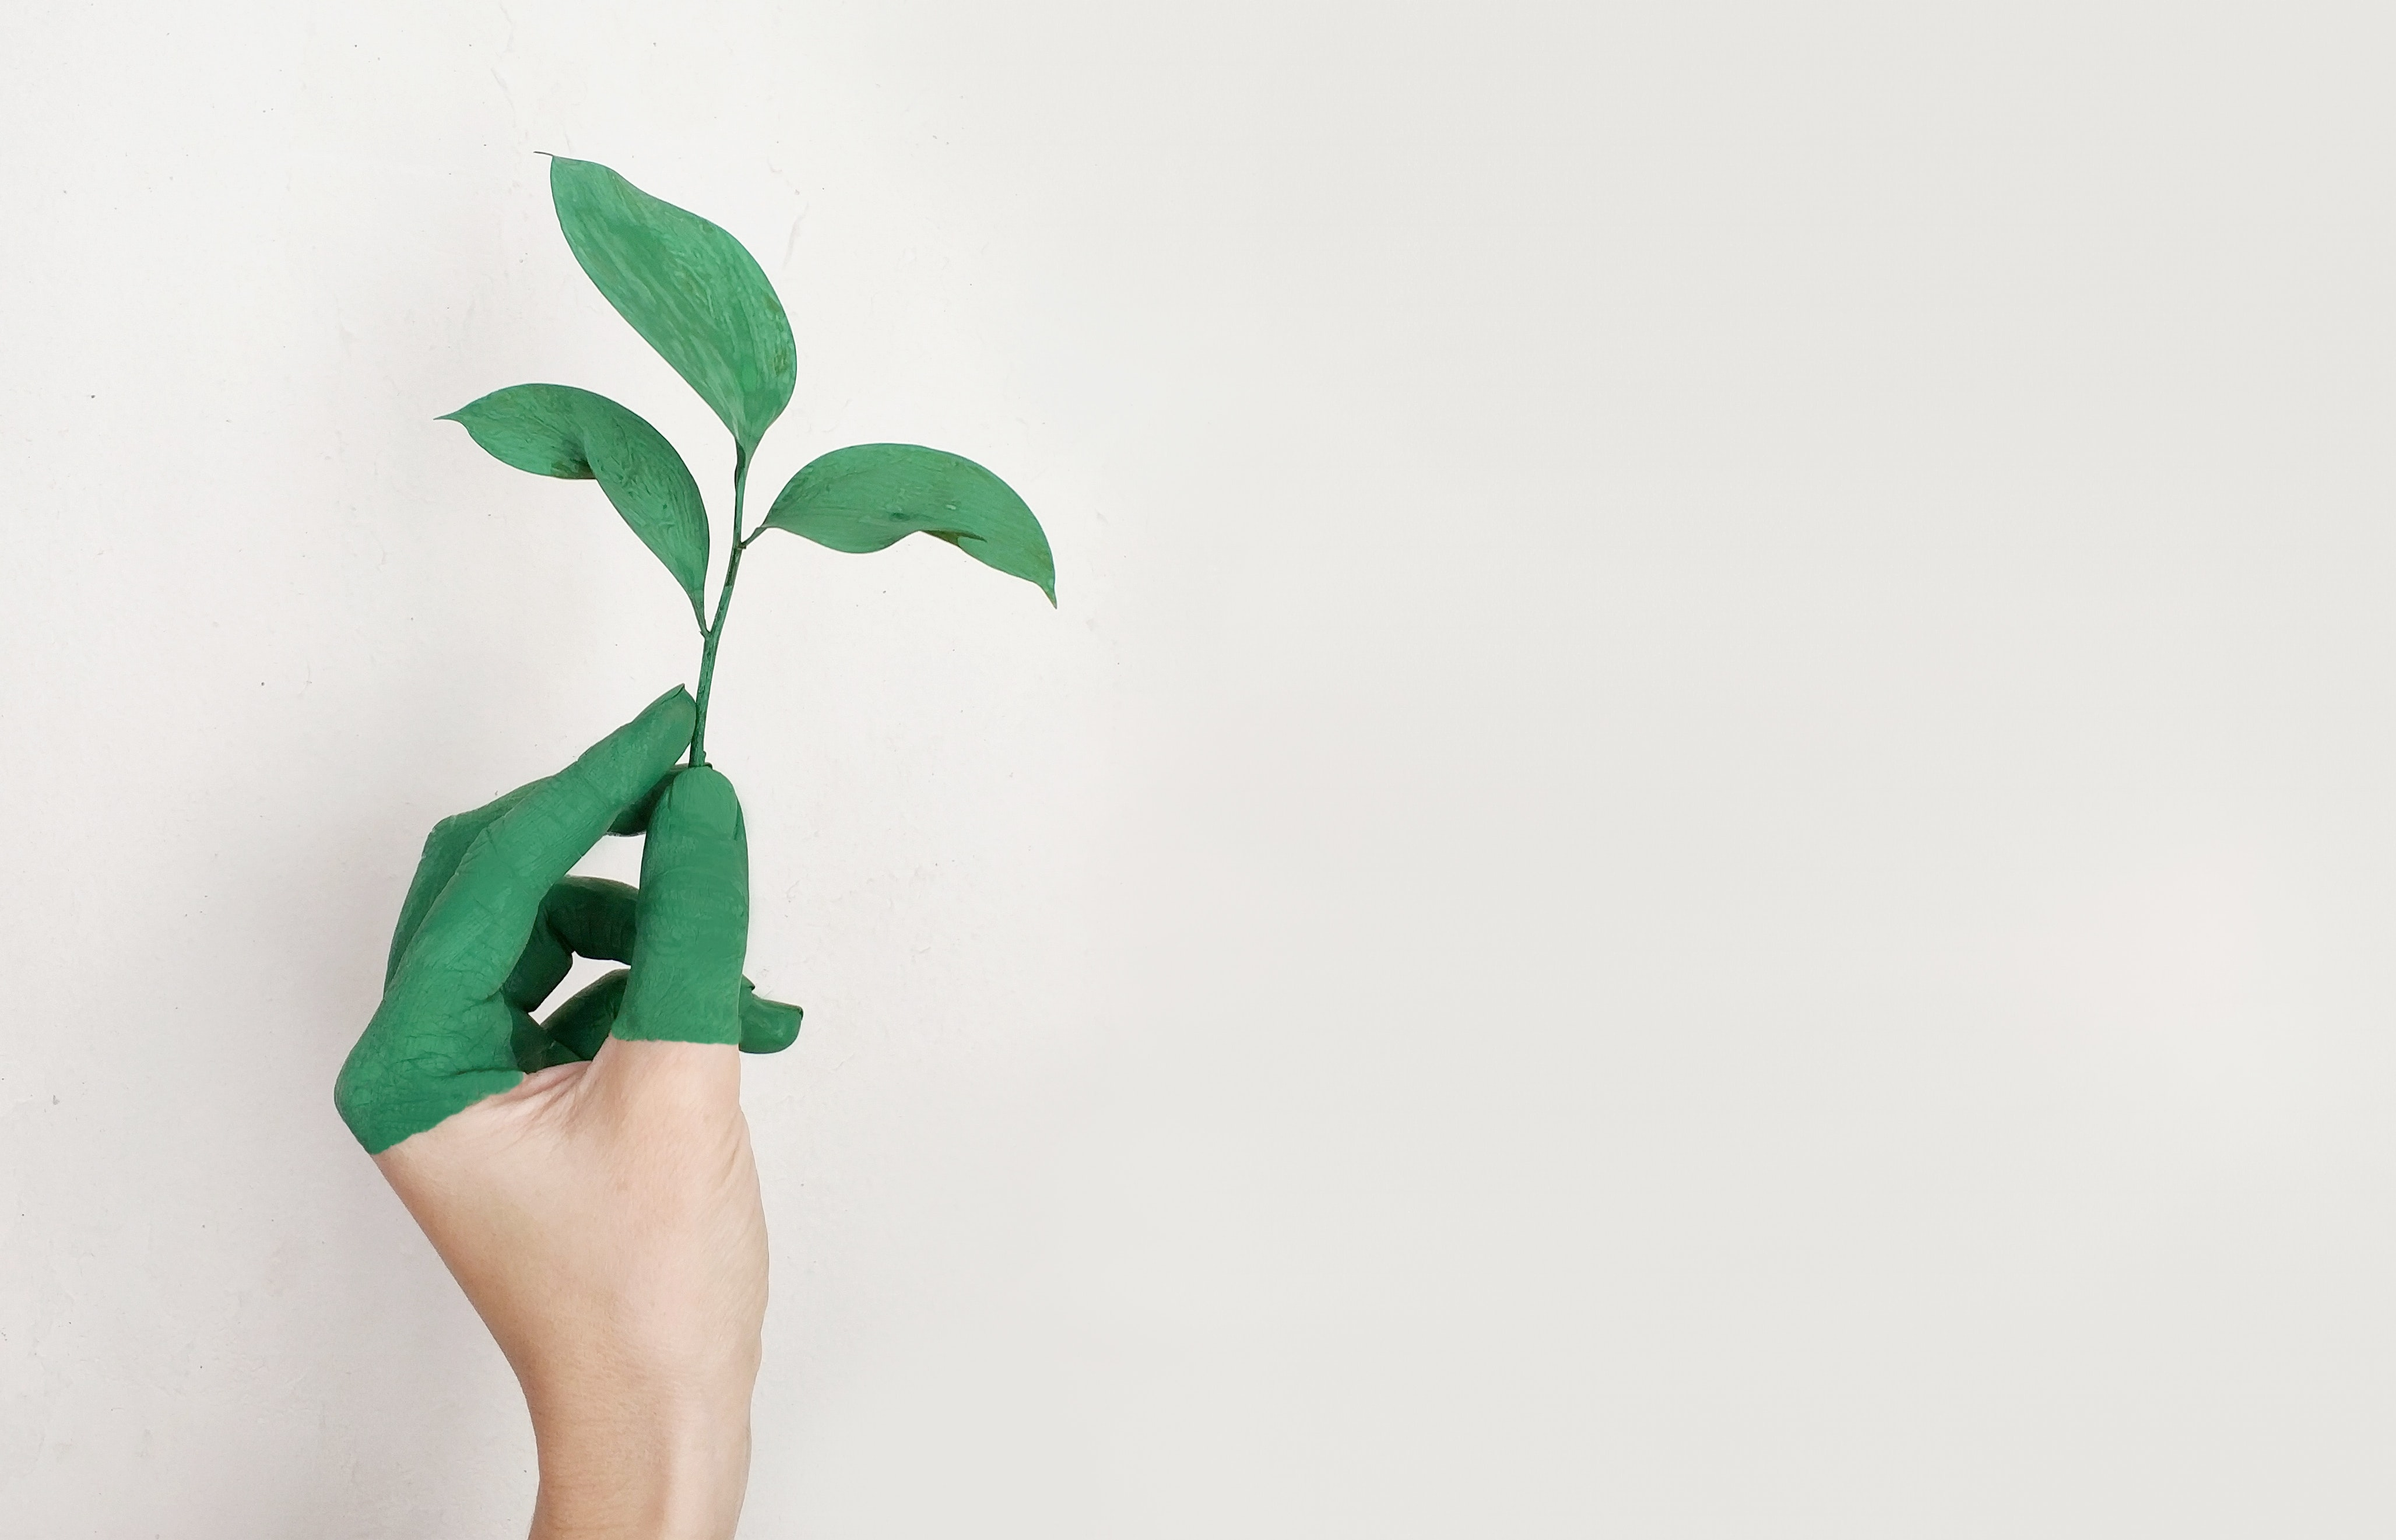 5 ways to make your home eco-friendly